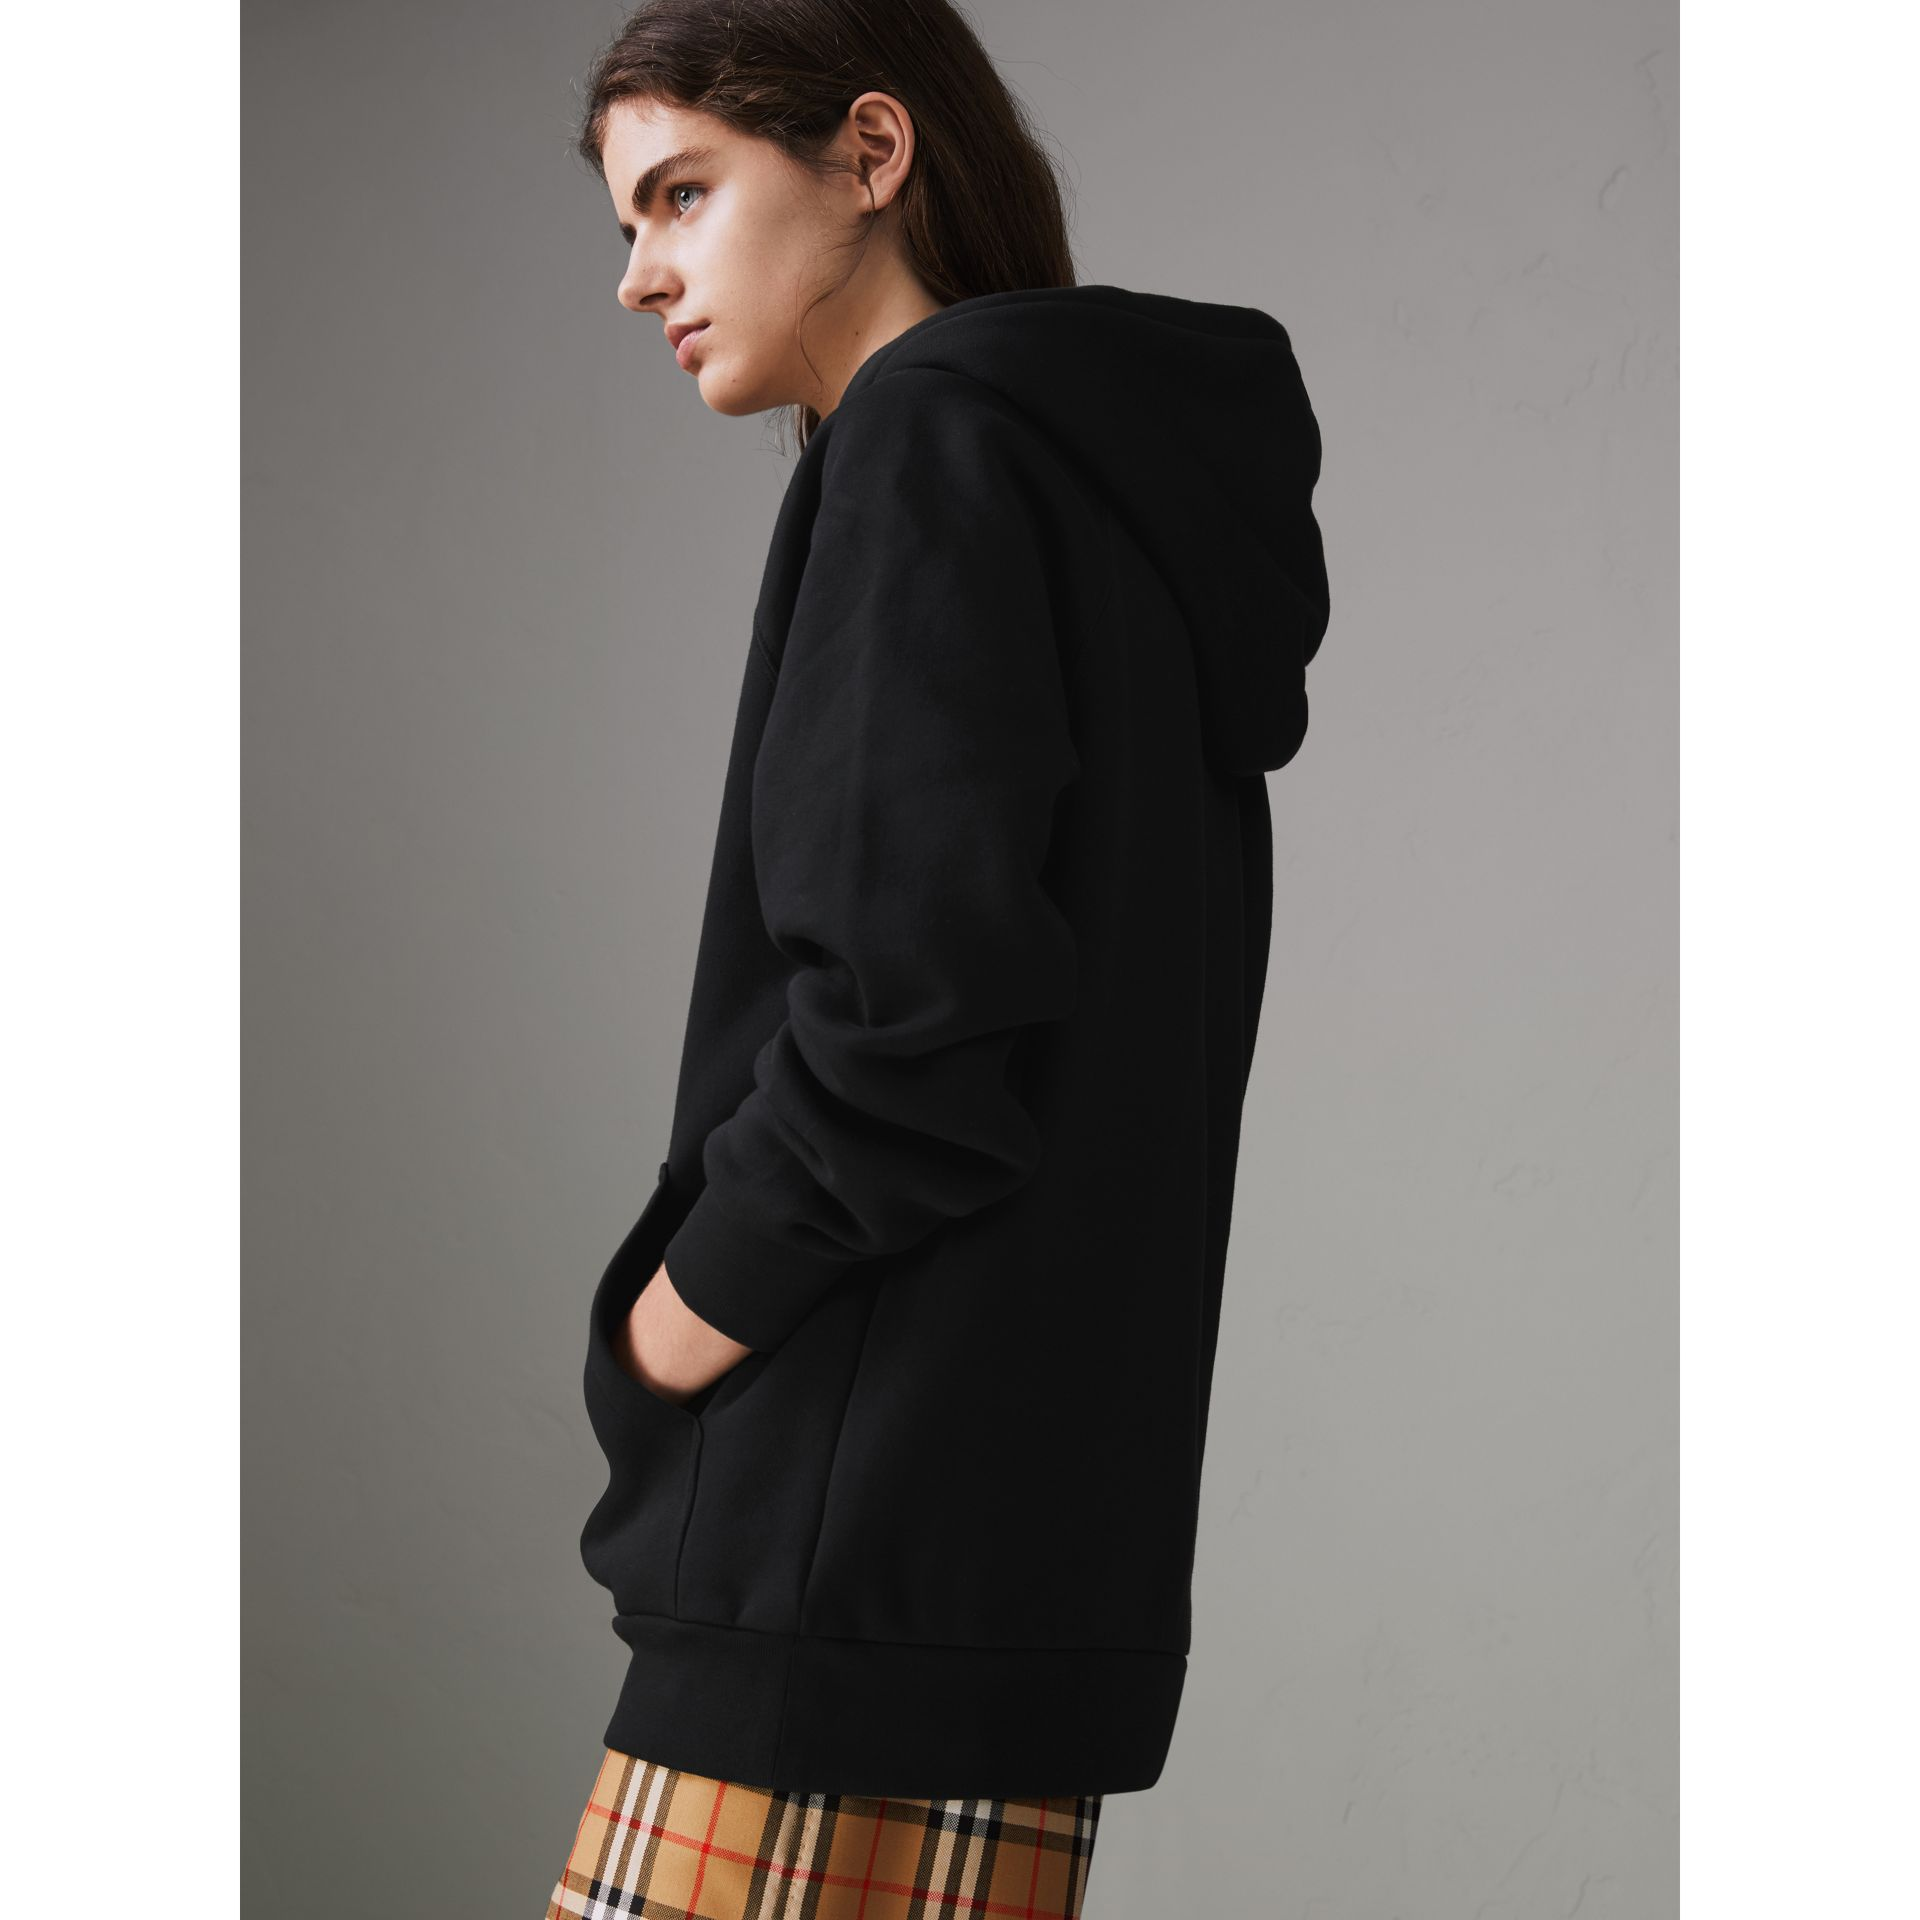 Embroidered Archive Logo Oversized Hoodie in Black - Women | Burberry United States - gallery image 2